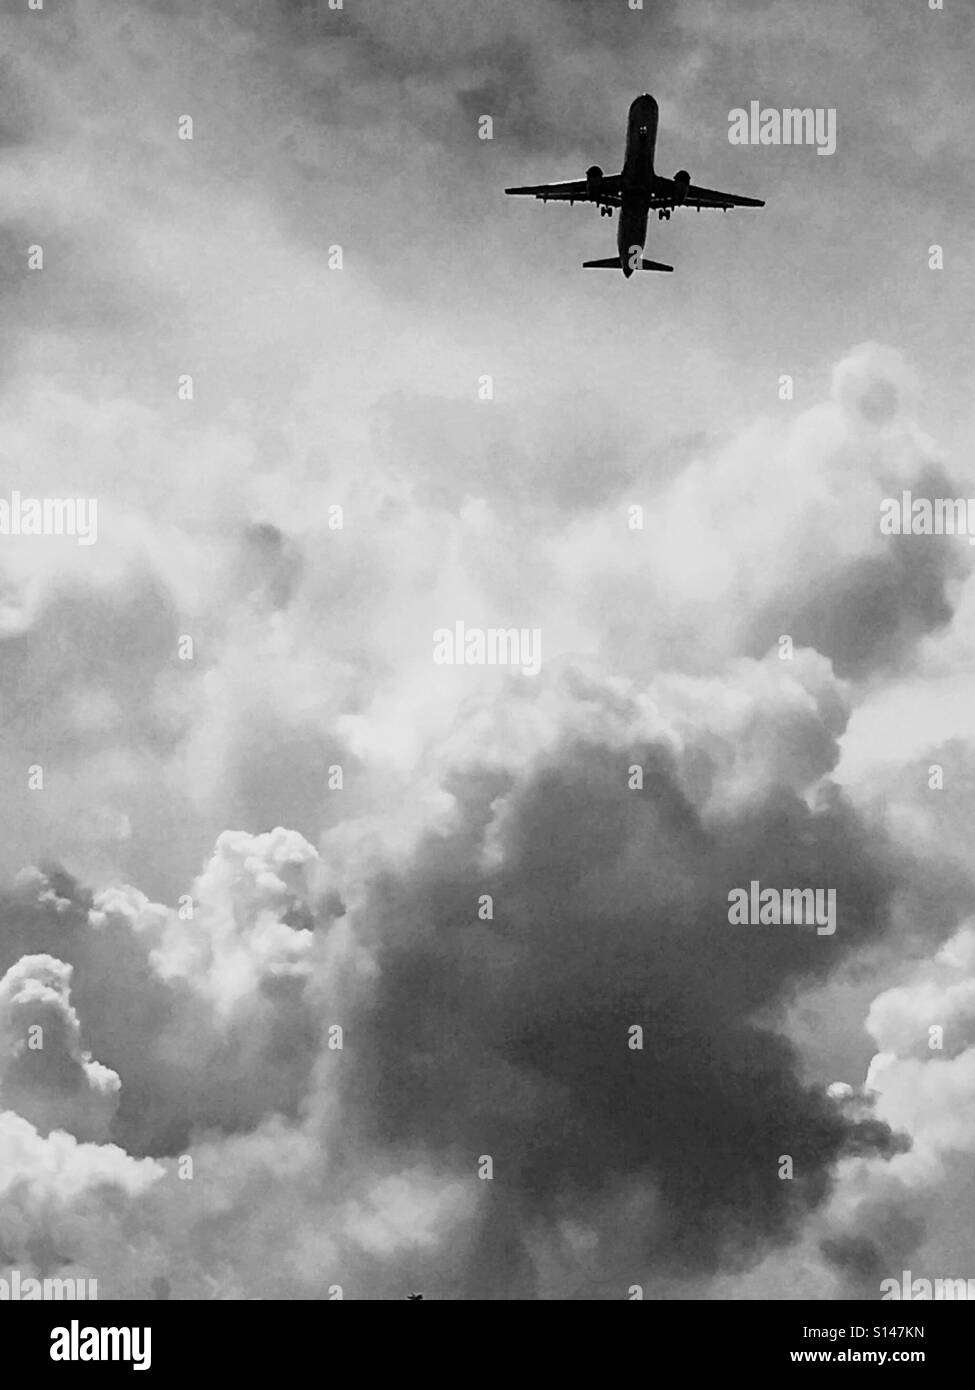 Jet plane amongst the clouds - Stock Image